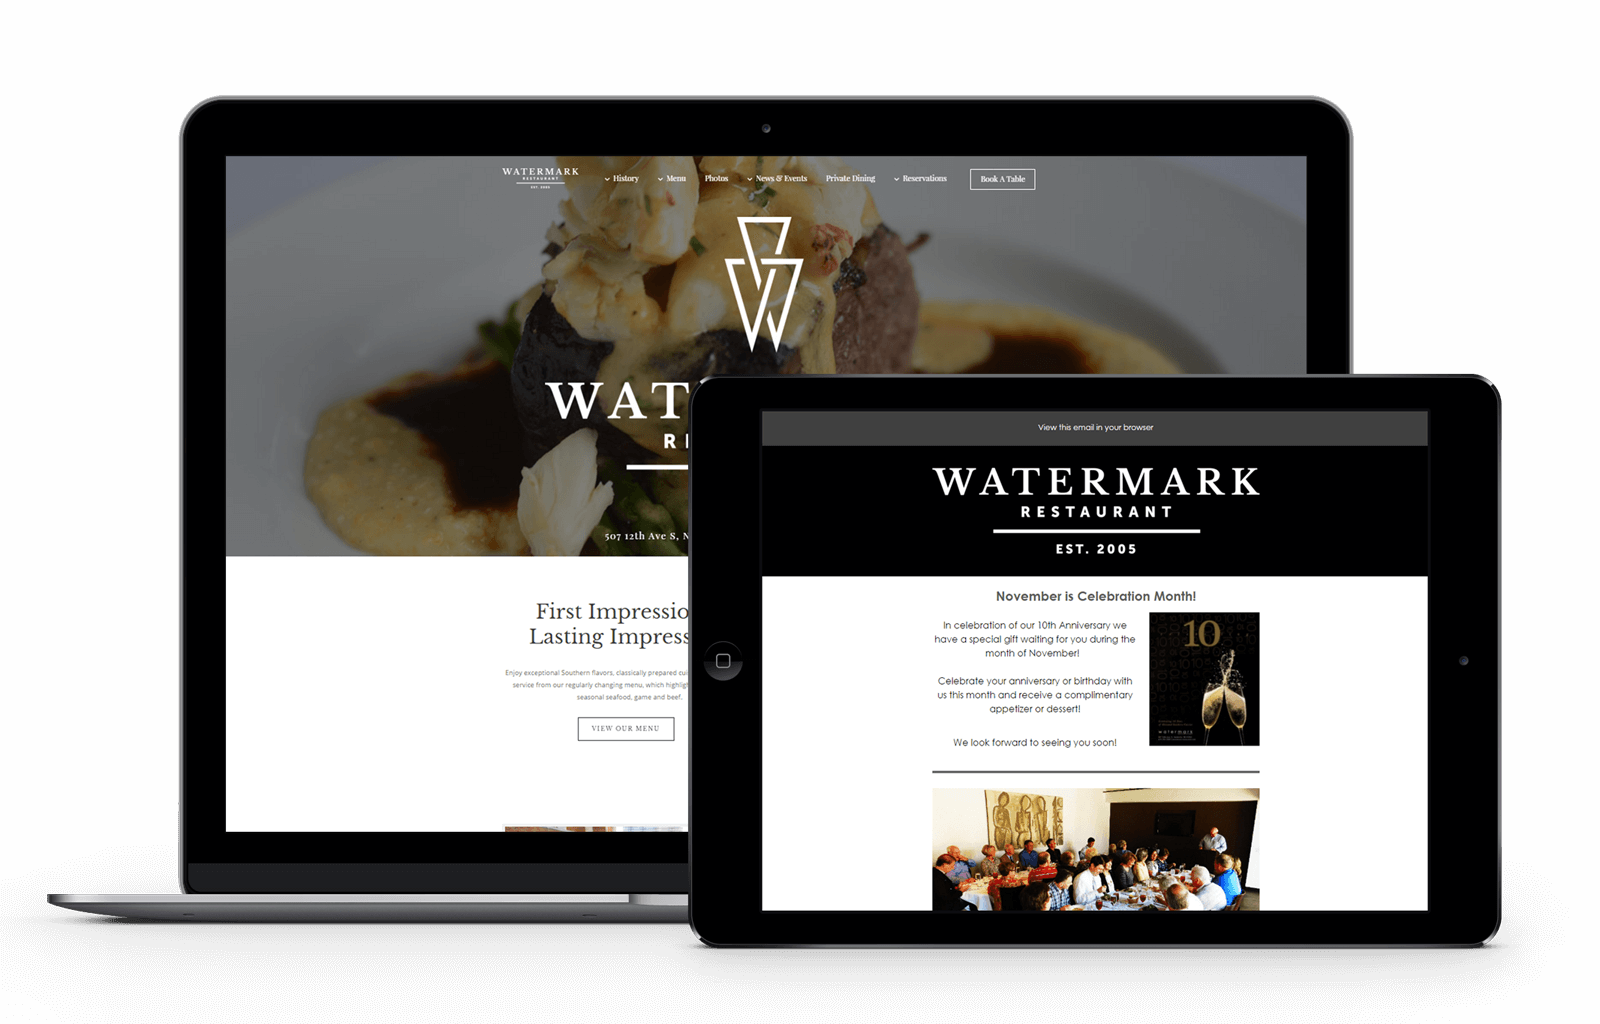 watermark--marketing-casestudy-mockup_1600px.png